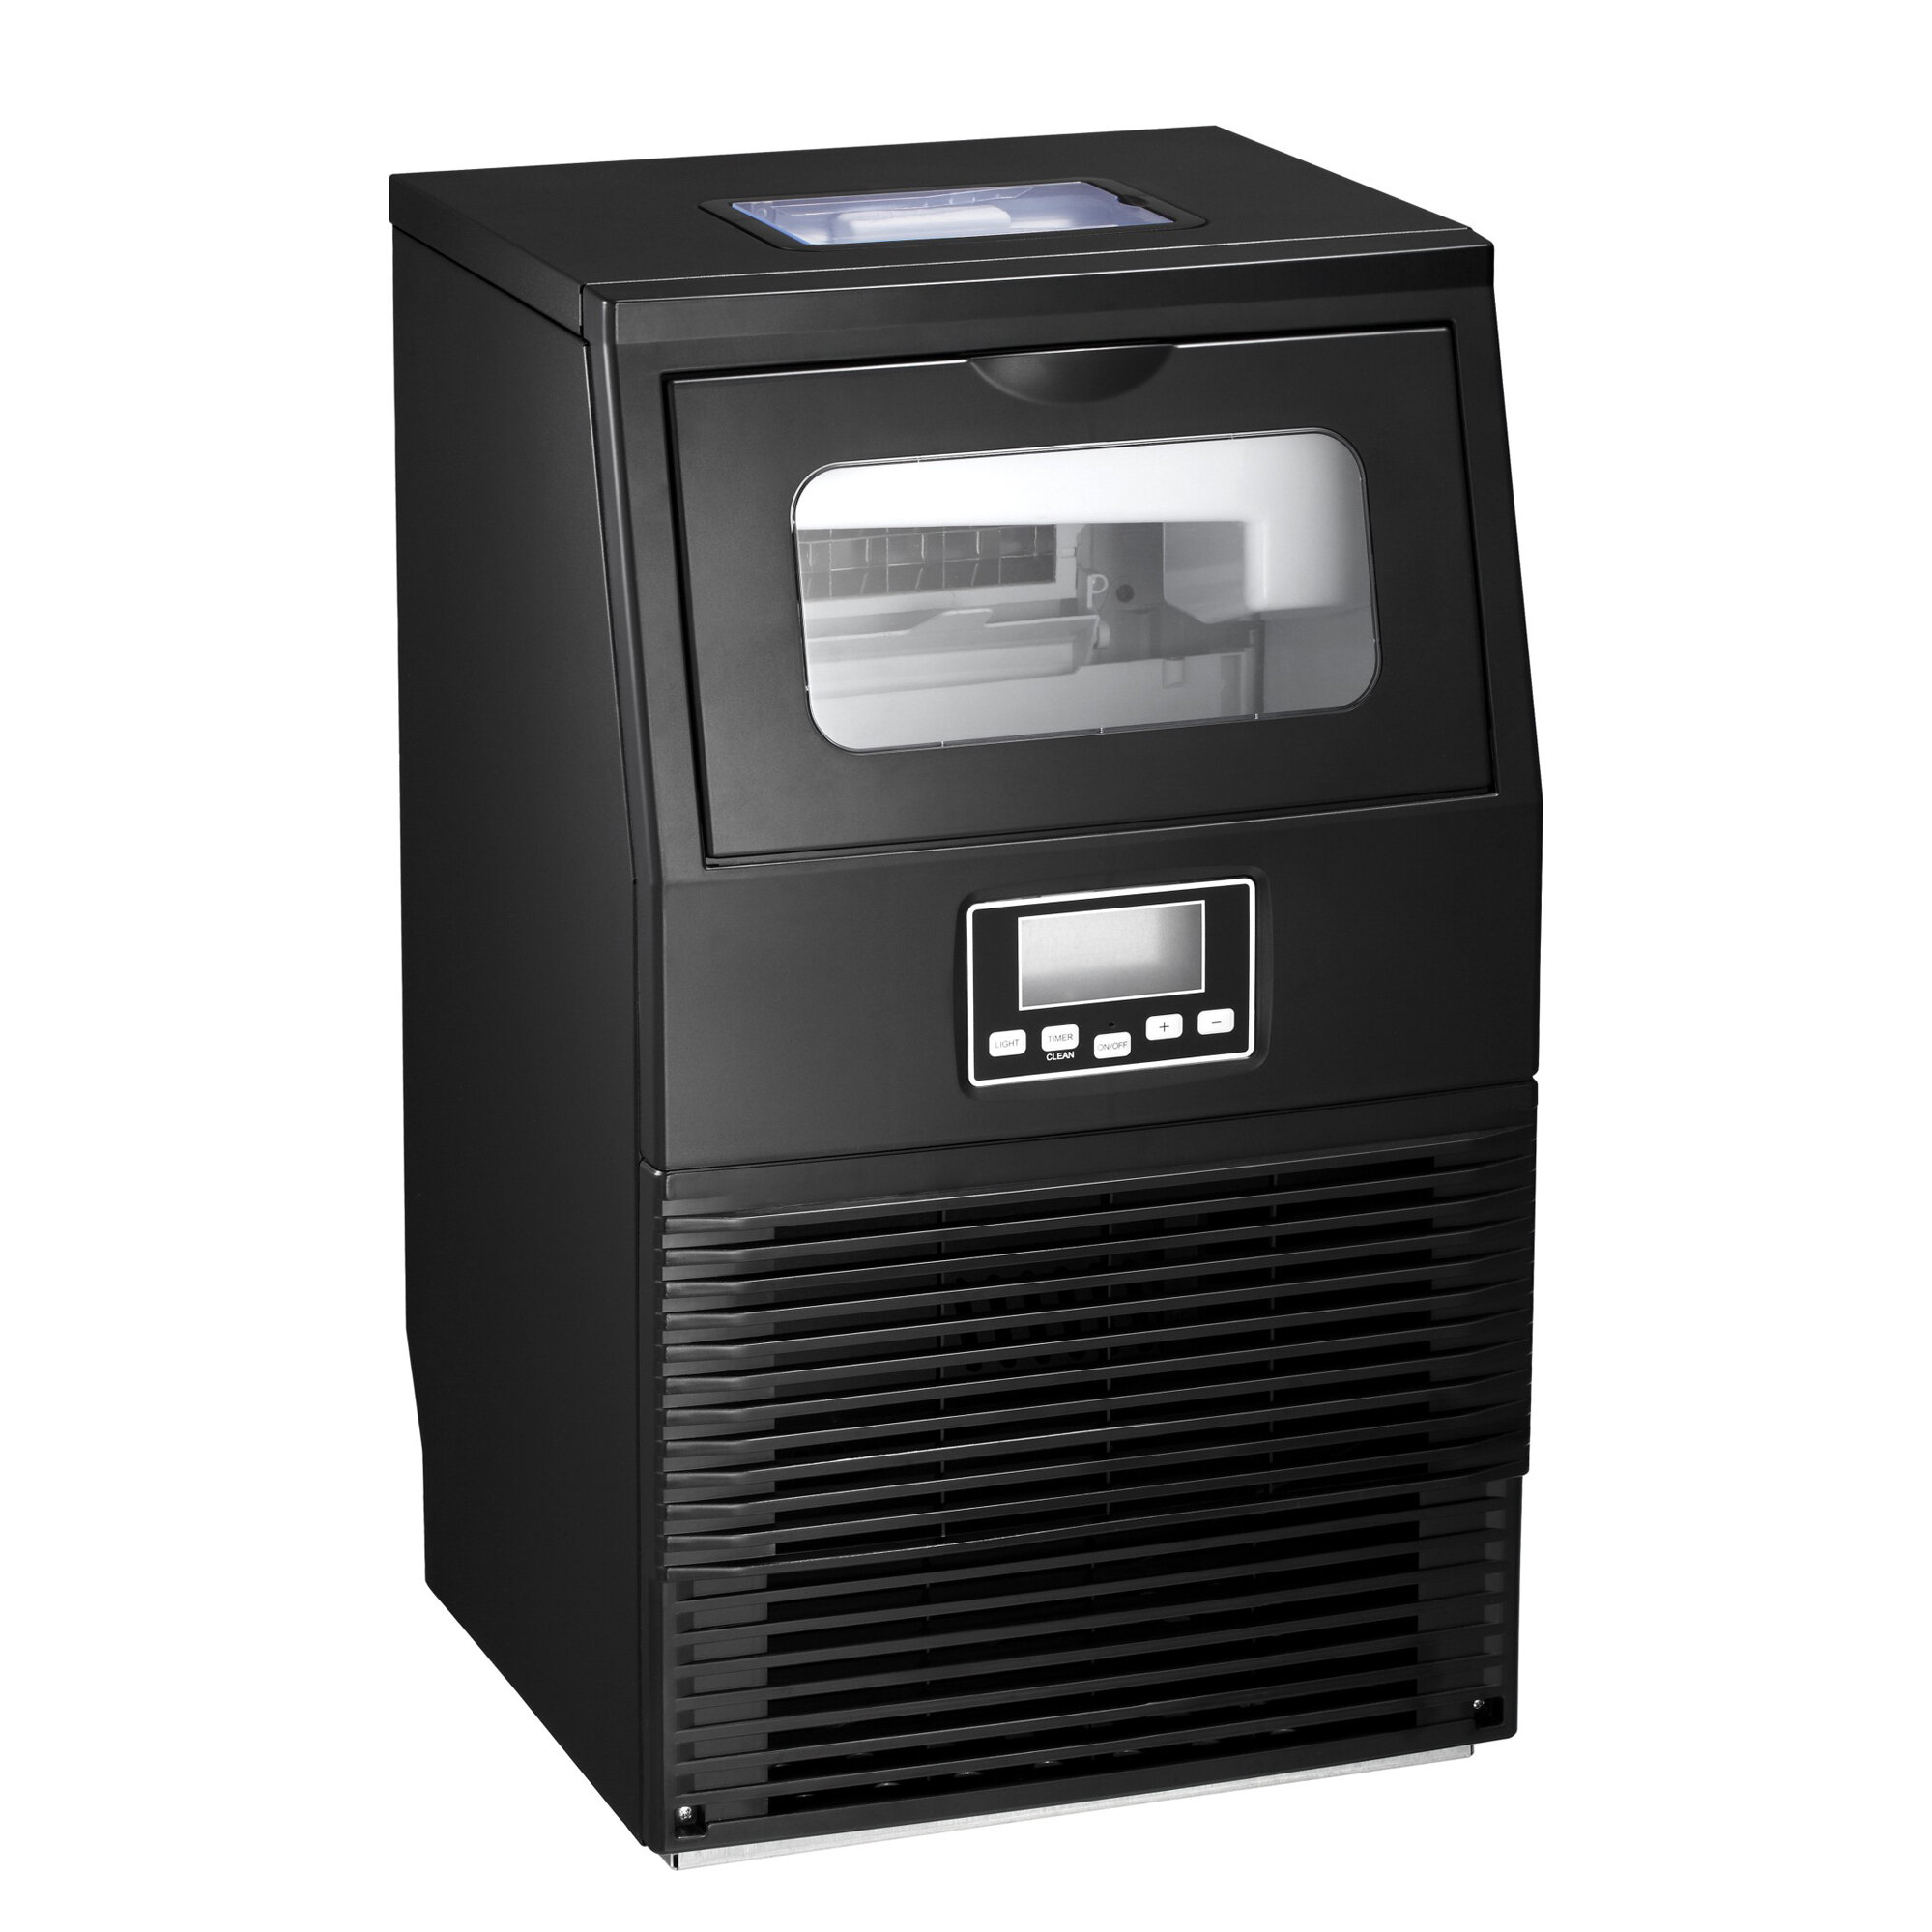 Yukool Commercial Machine 84 Lb Daily Production Freestanding Ice Maker Wayfair